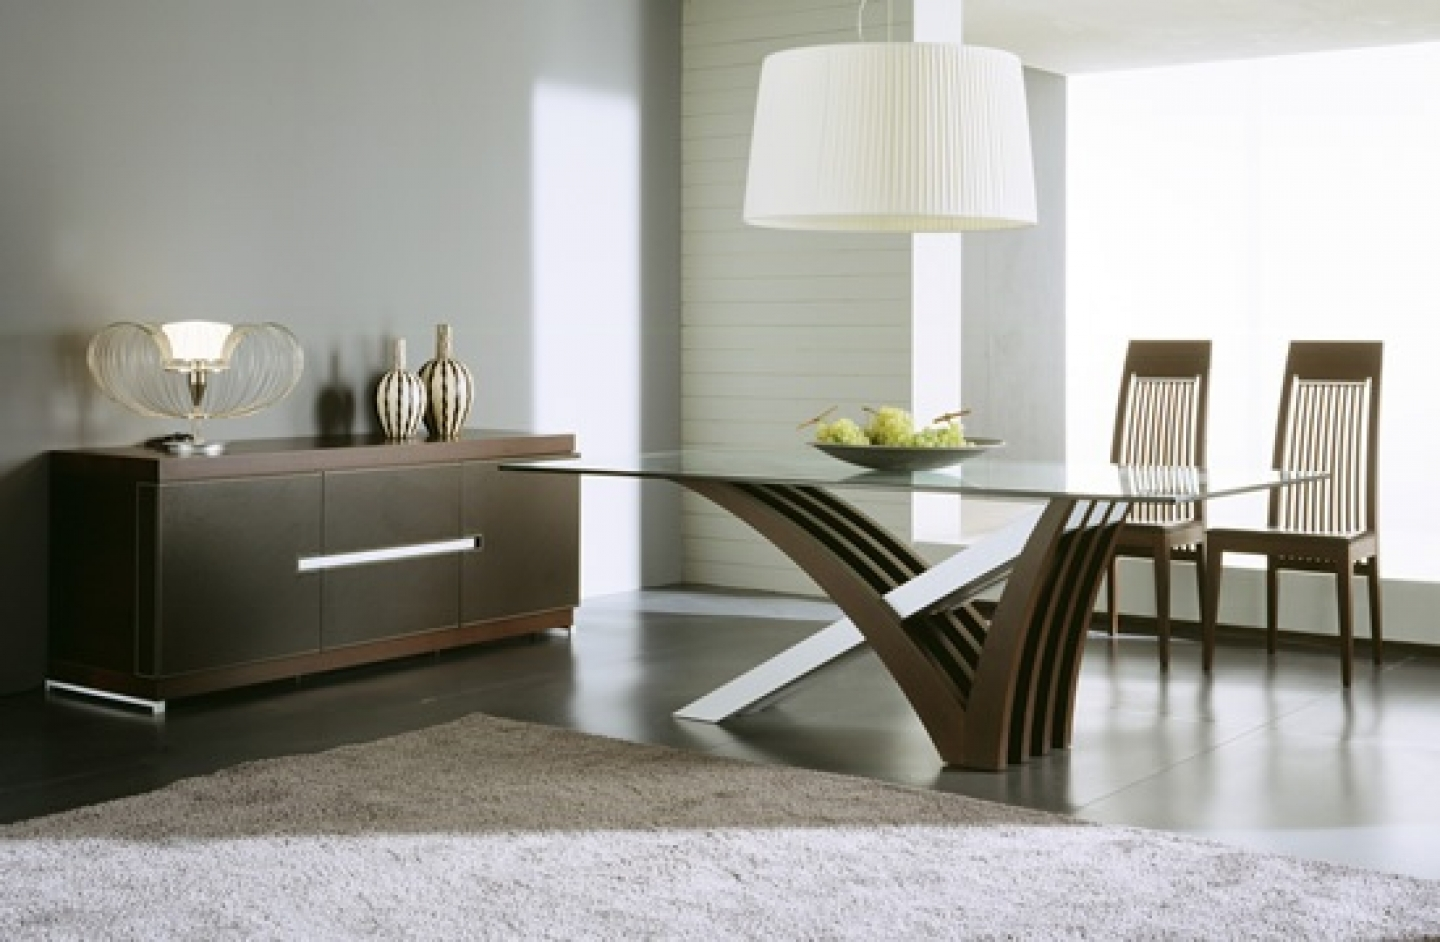 Teak patio furniture at home decor dream house for Contemporary dining table designs